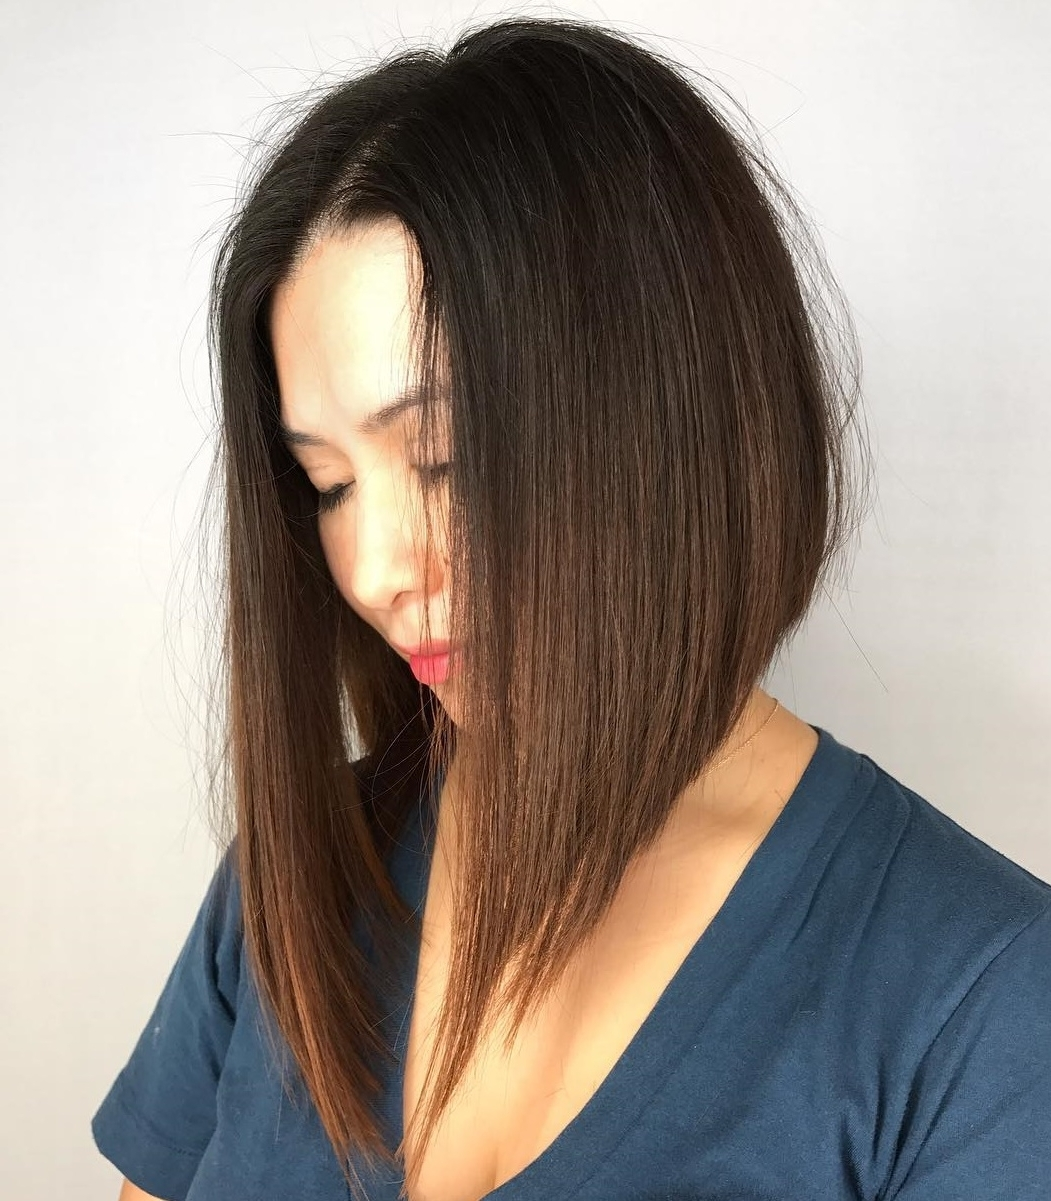 20 Must See Bob Haircuts For Fine Hair To Try In 2020 20+ Amazing Medium Length Bob Hairstyles For Fine Black Hair